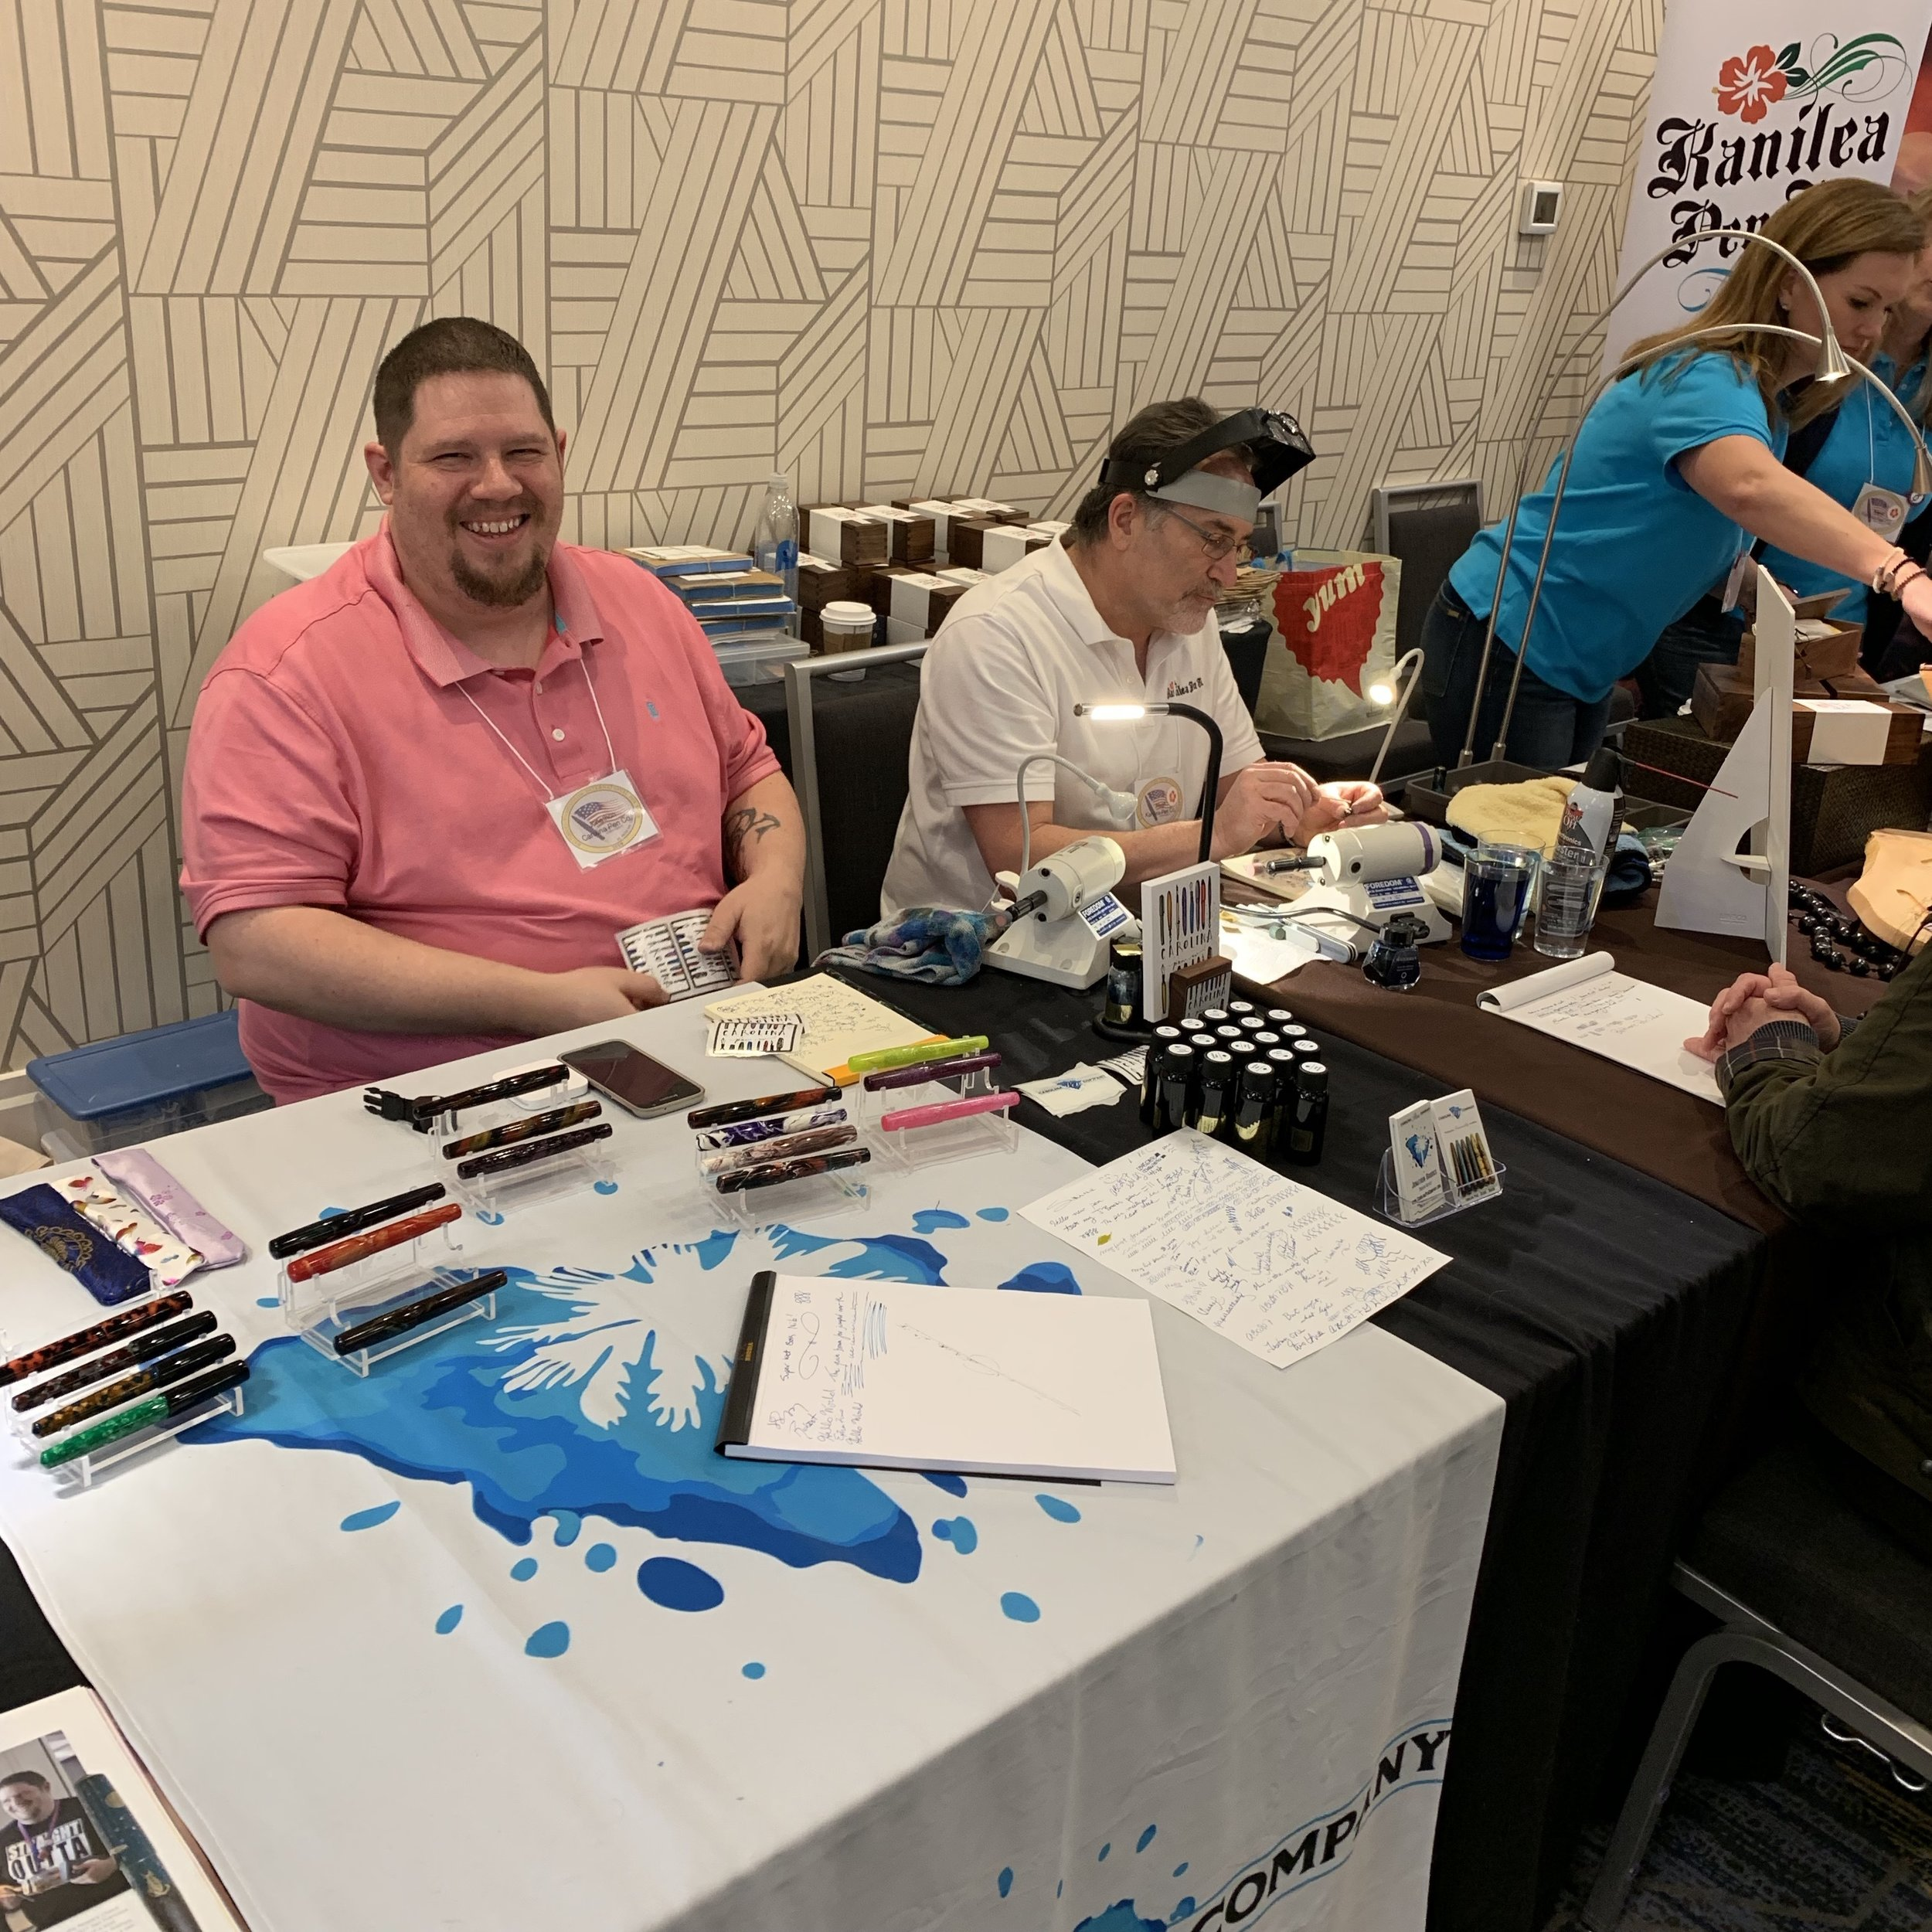 Jonathon Brooks was next to Hugh Scher of the Kanilea Pen Company all weekend. You could lose a lot of money in that corner!